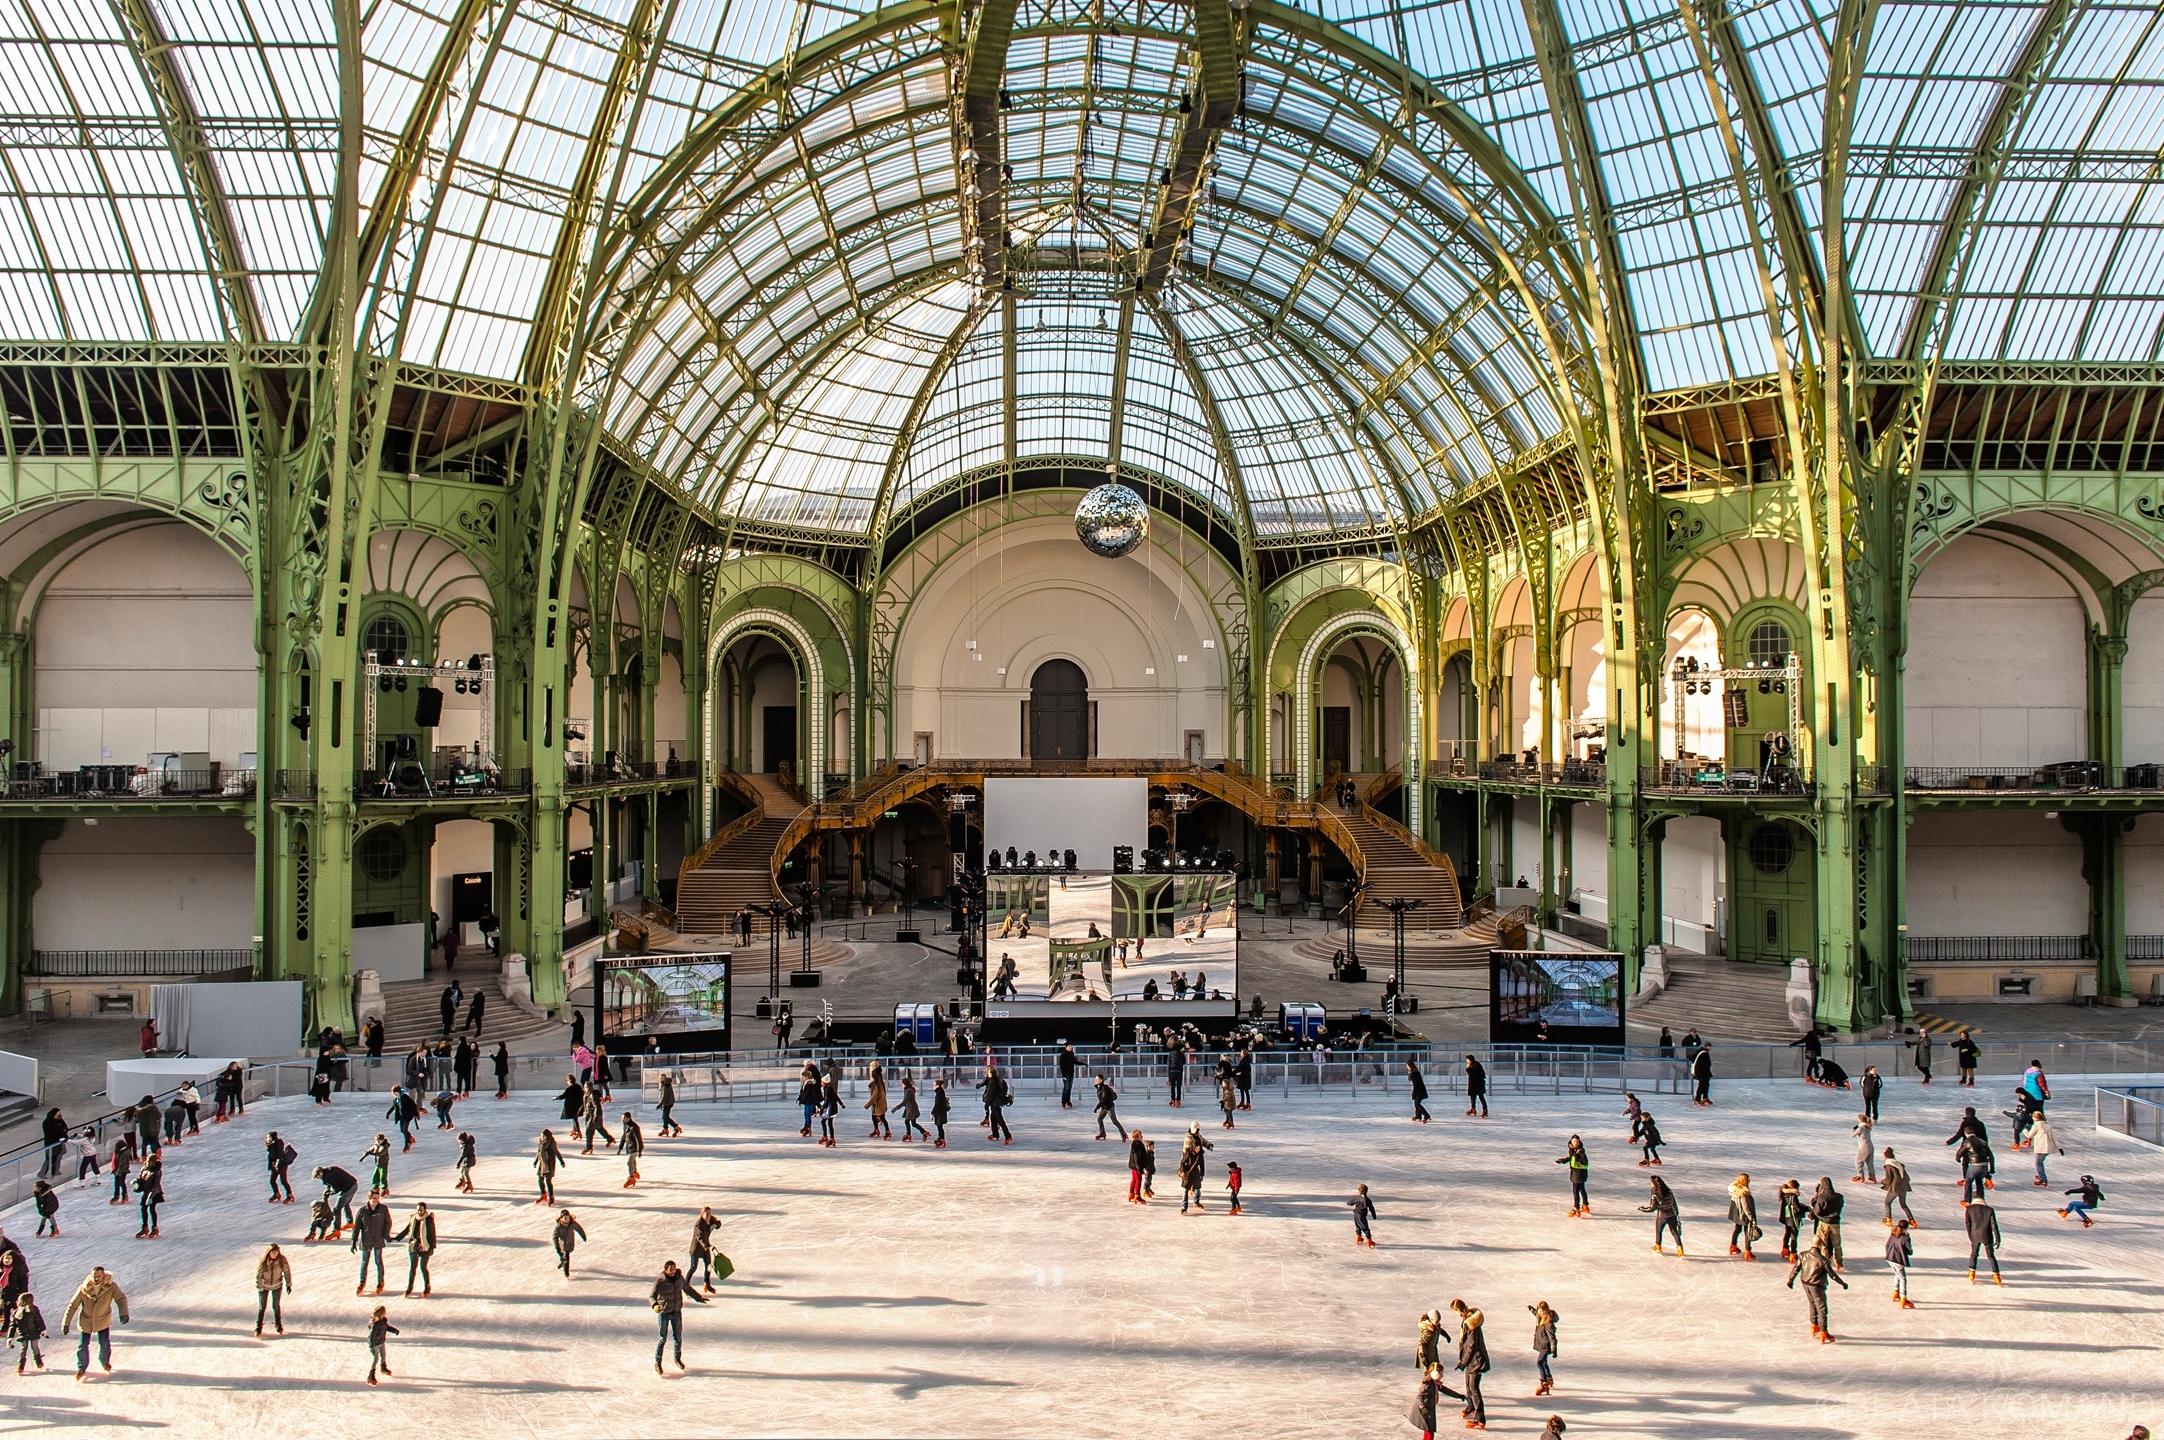 Ouverture de la patinoire au Grand Palais à Paris